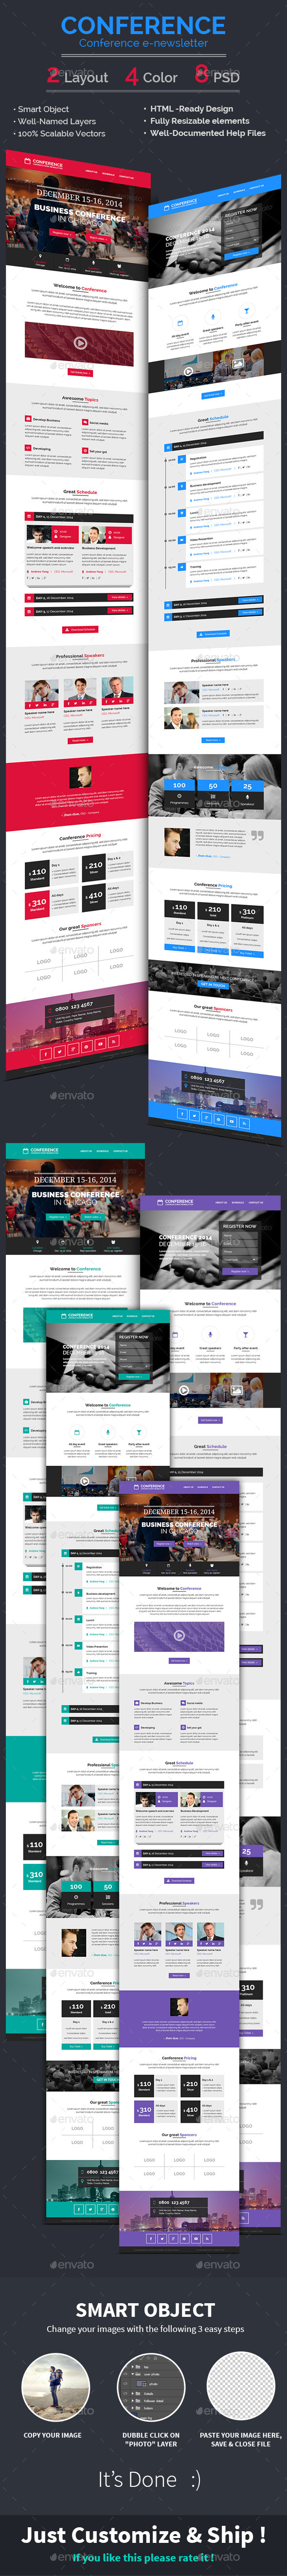 GraphicRiver Conference Event E-newsletter PSD Template 8984948